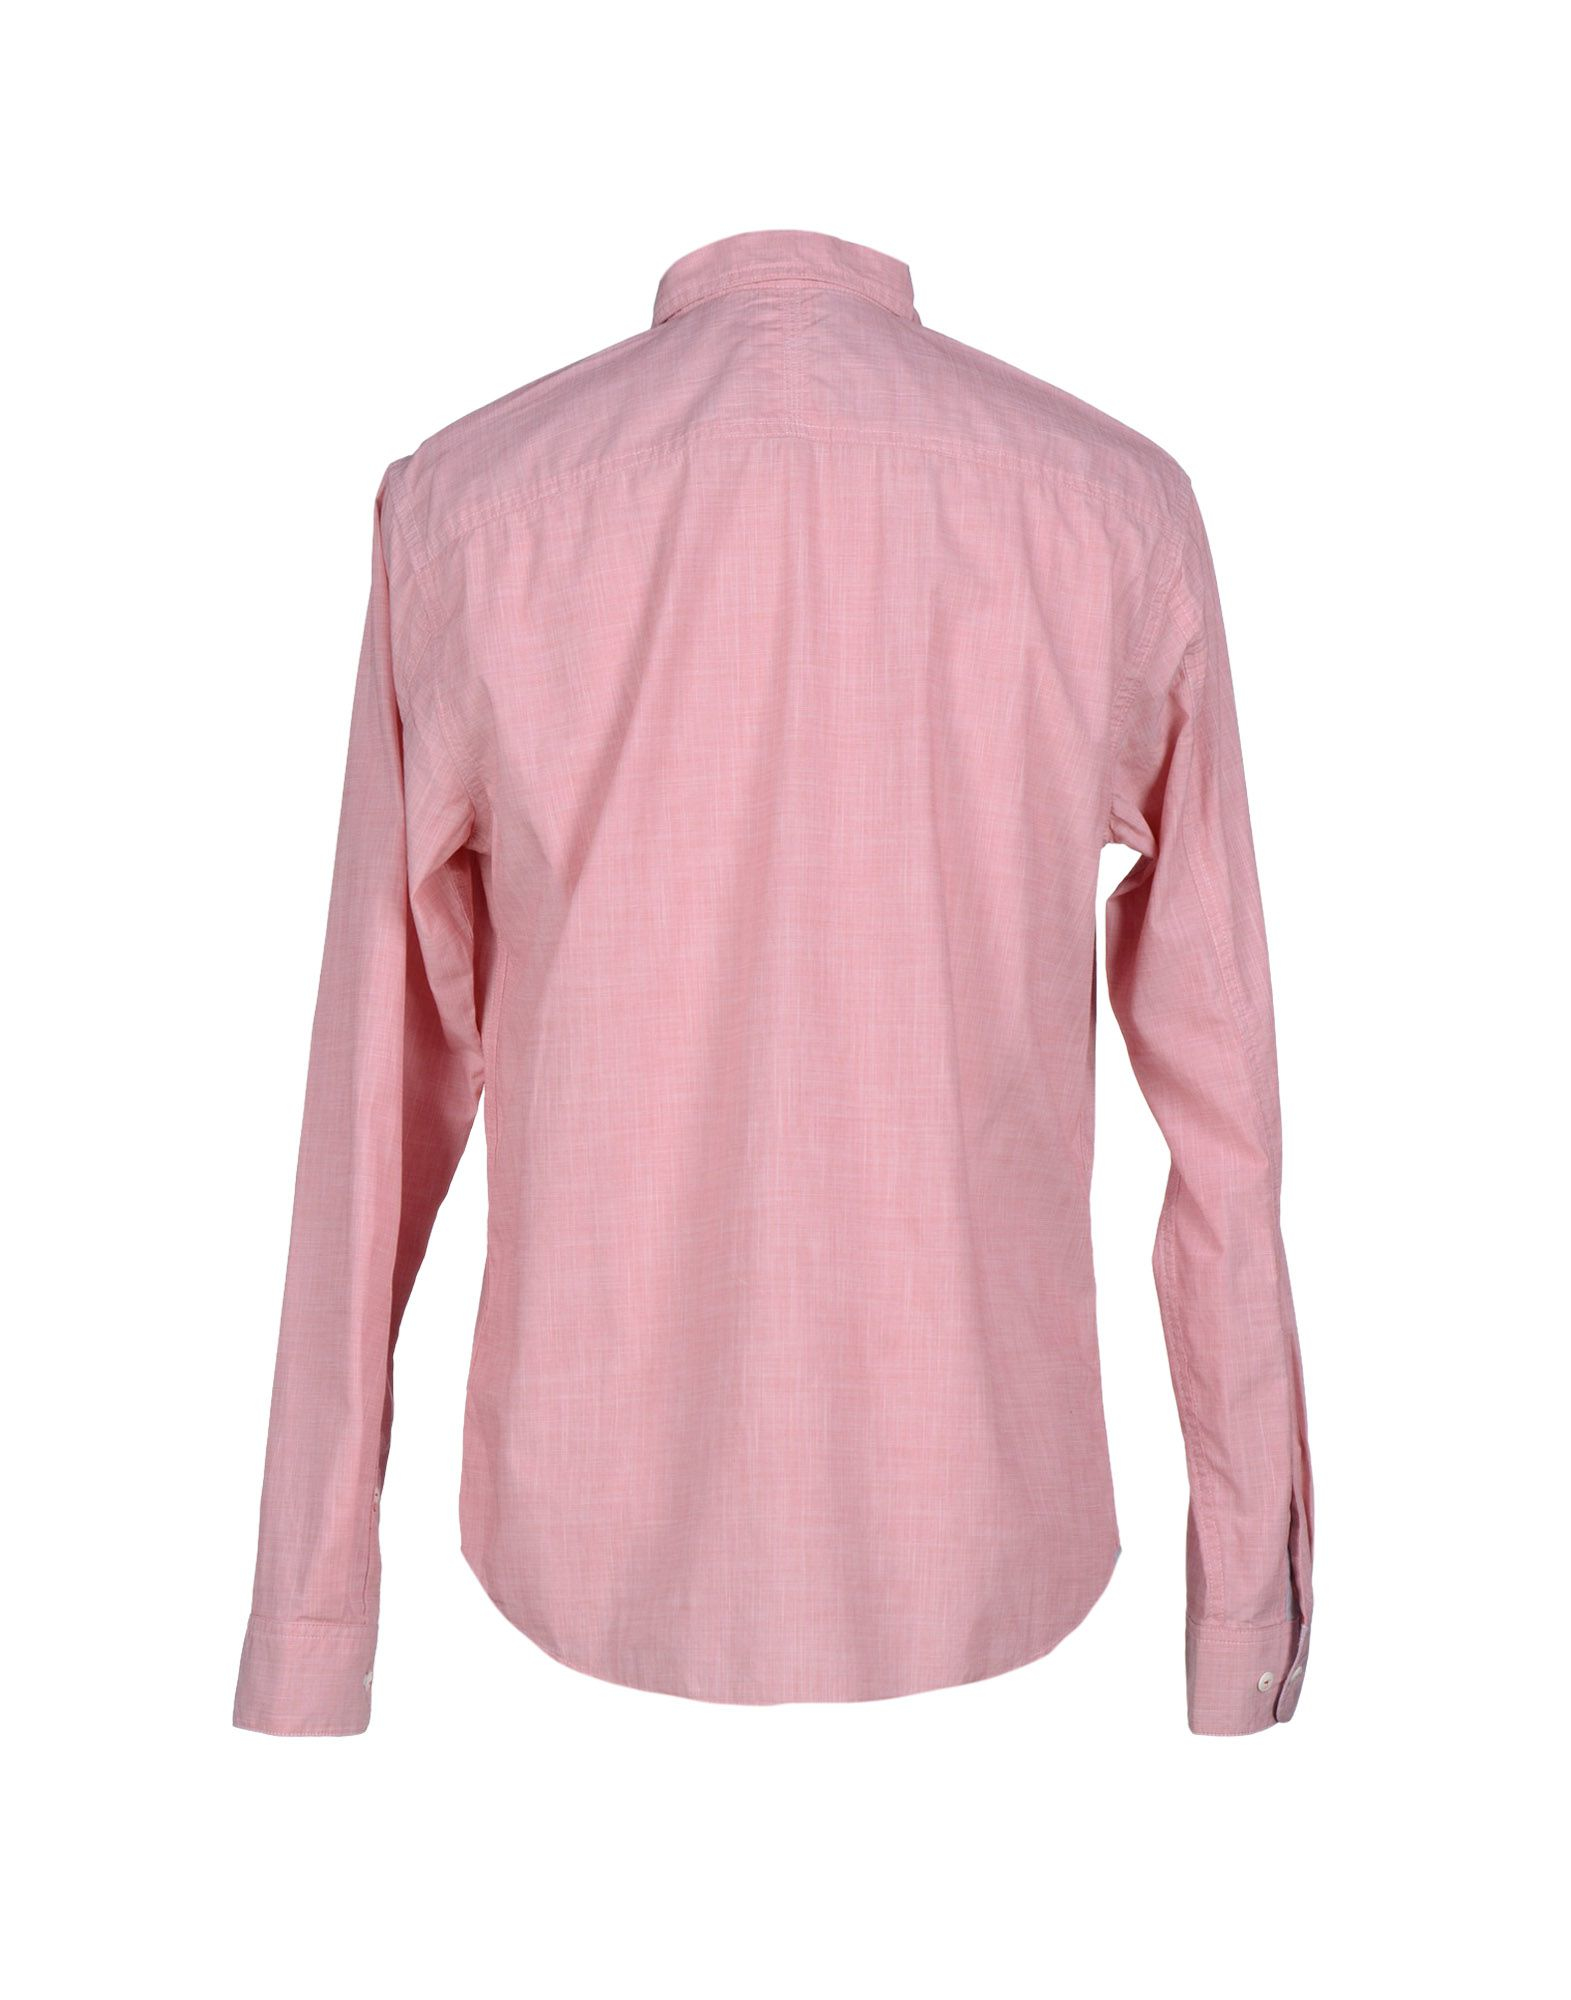 Lyst timberland shirt in pink for men for Mens pink shirts uk